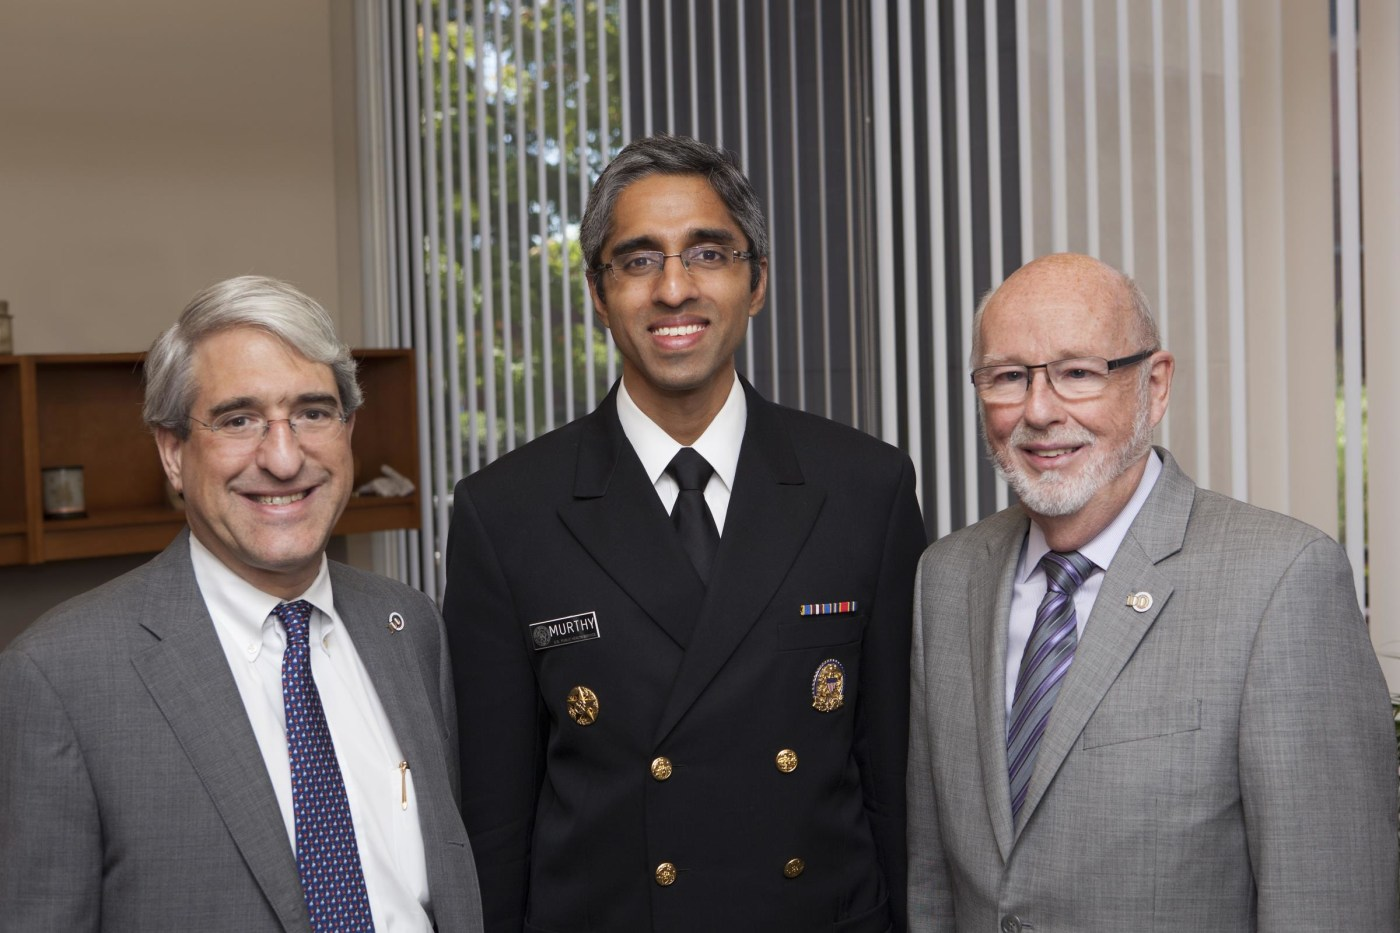 Milbank Lecture with Surgeon General Vivek H. Murthy